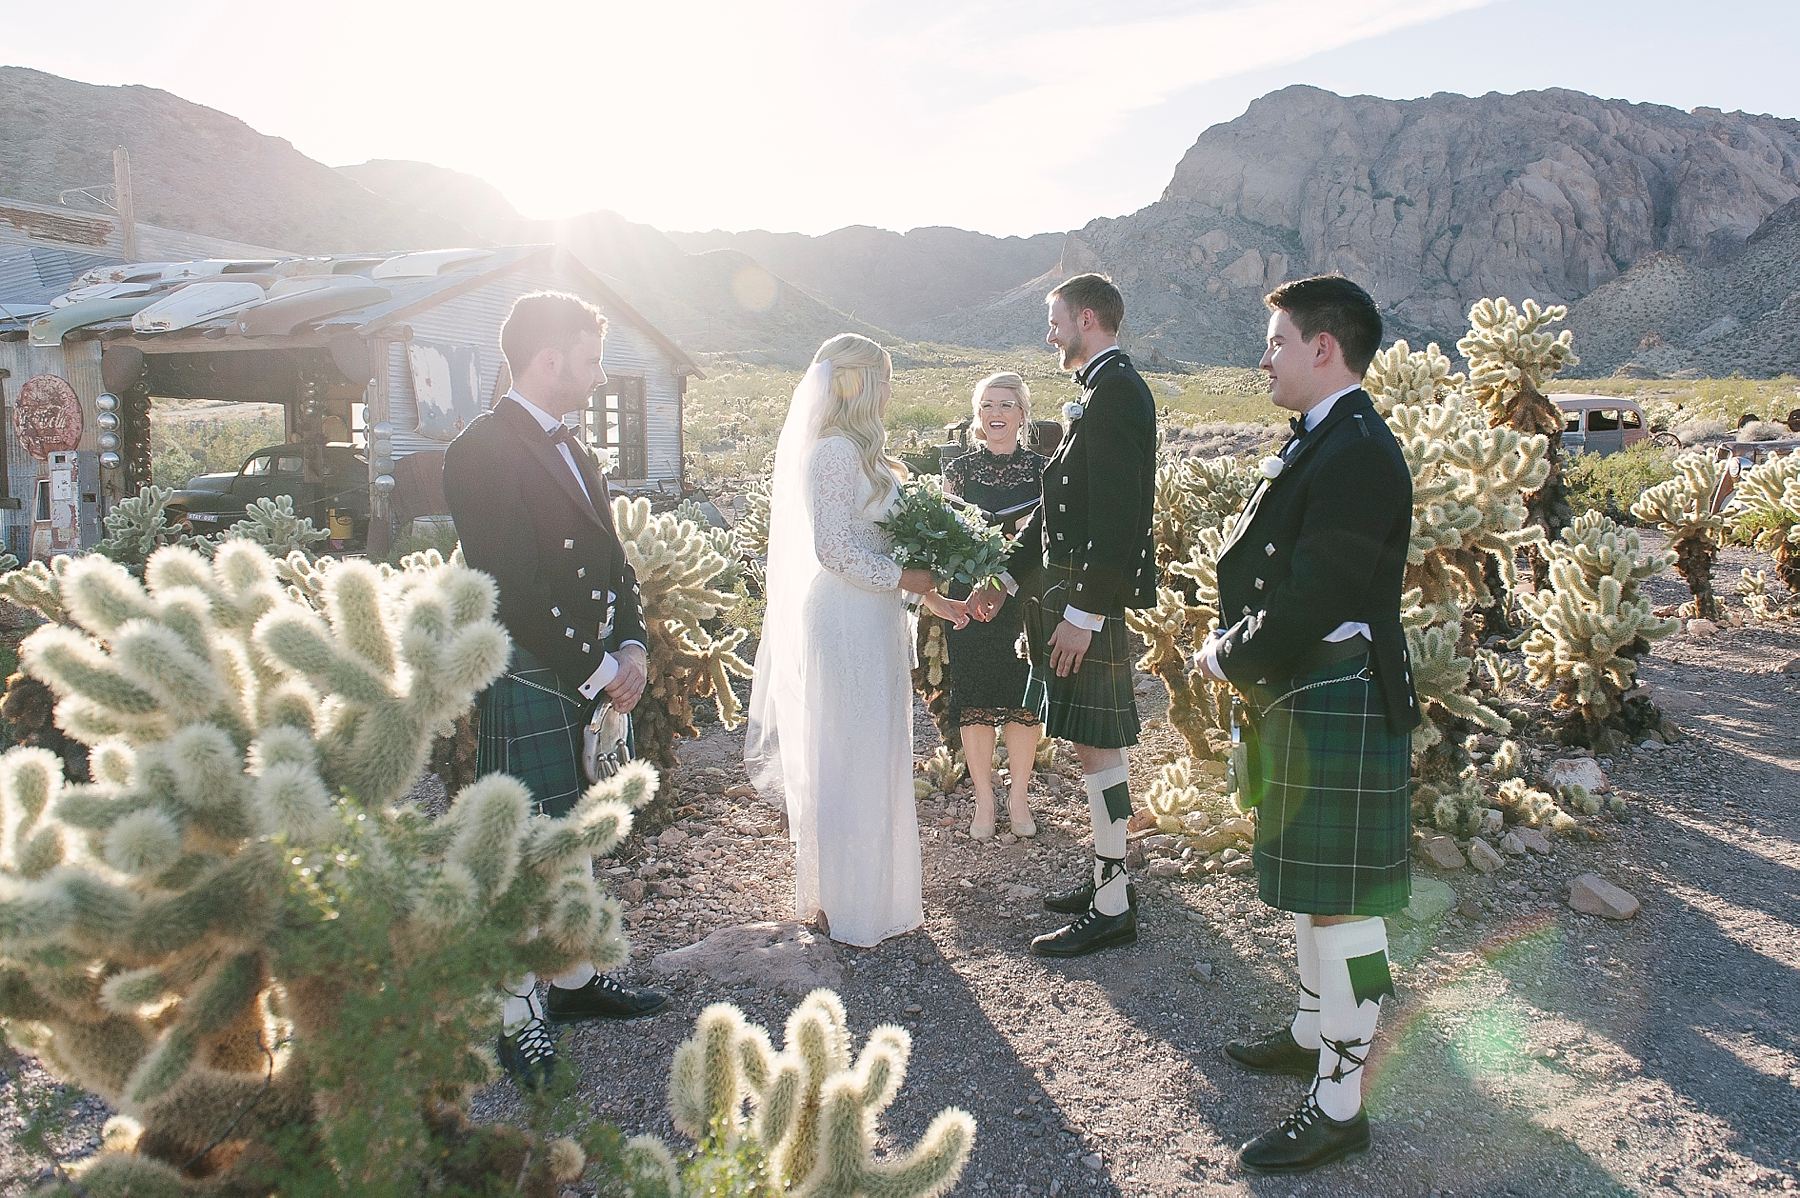 Las_Vegas_El_Dorado_Canyon_elopement_photography-1.jpg